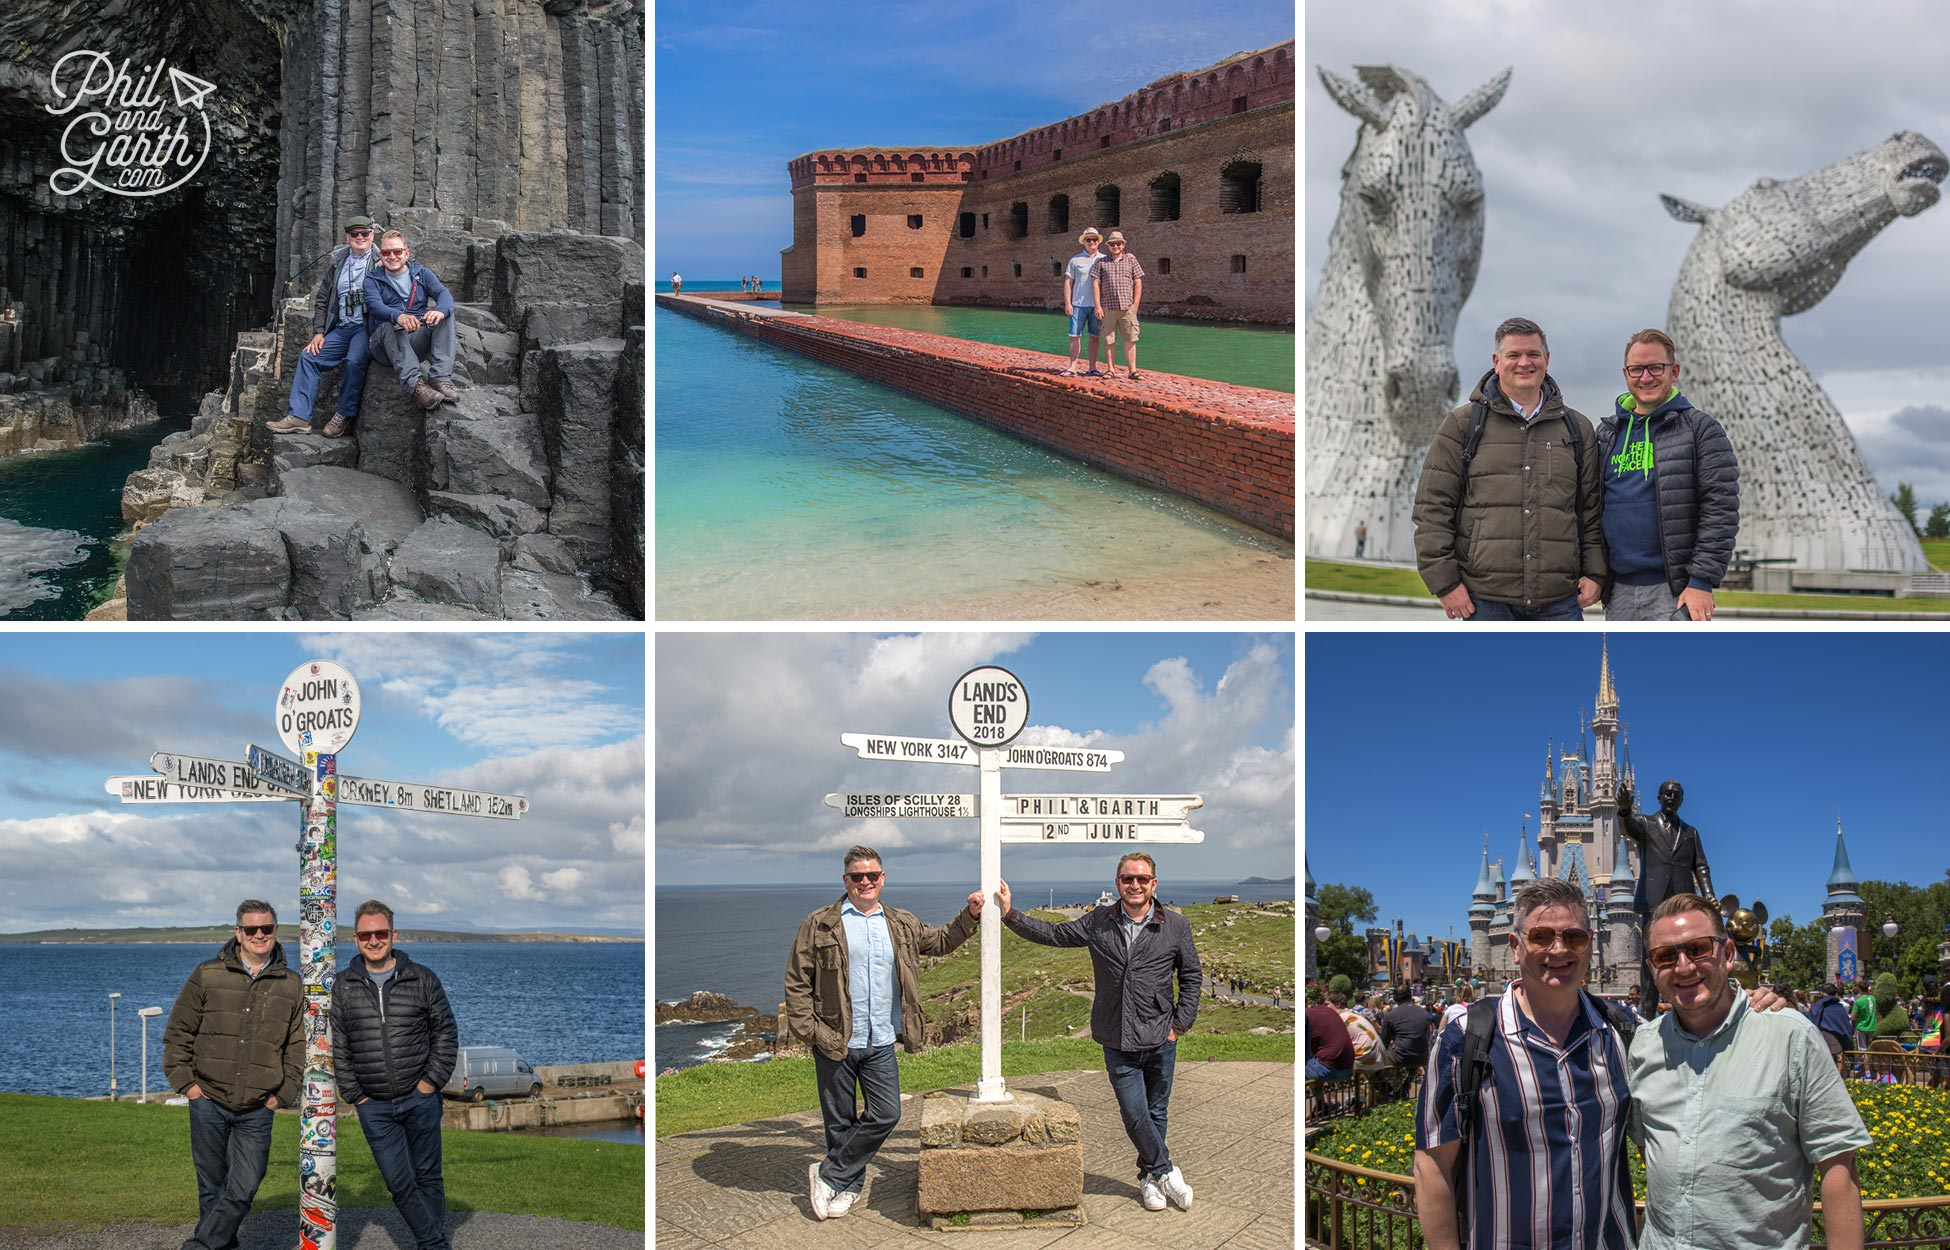 Phil and Garth Lands End and John O Groats